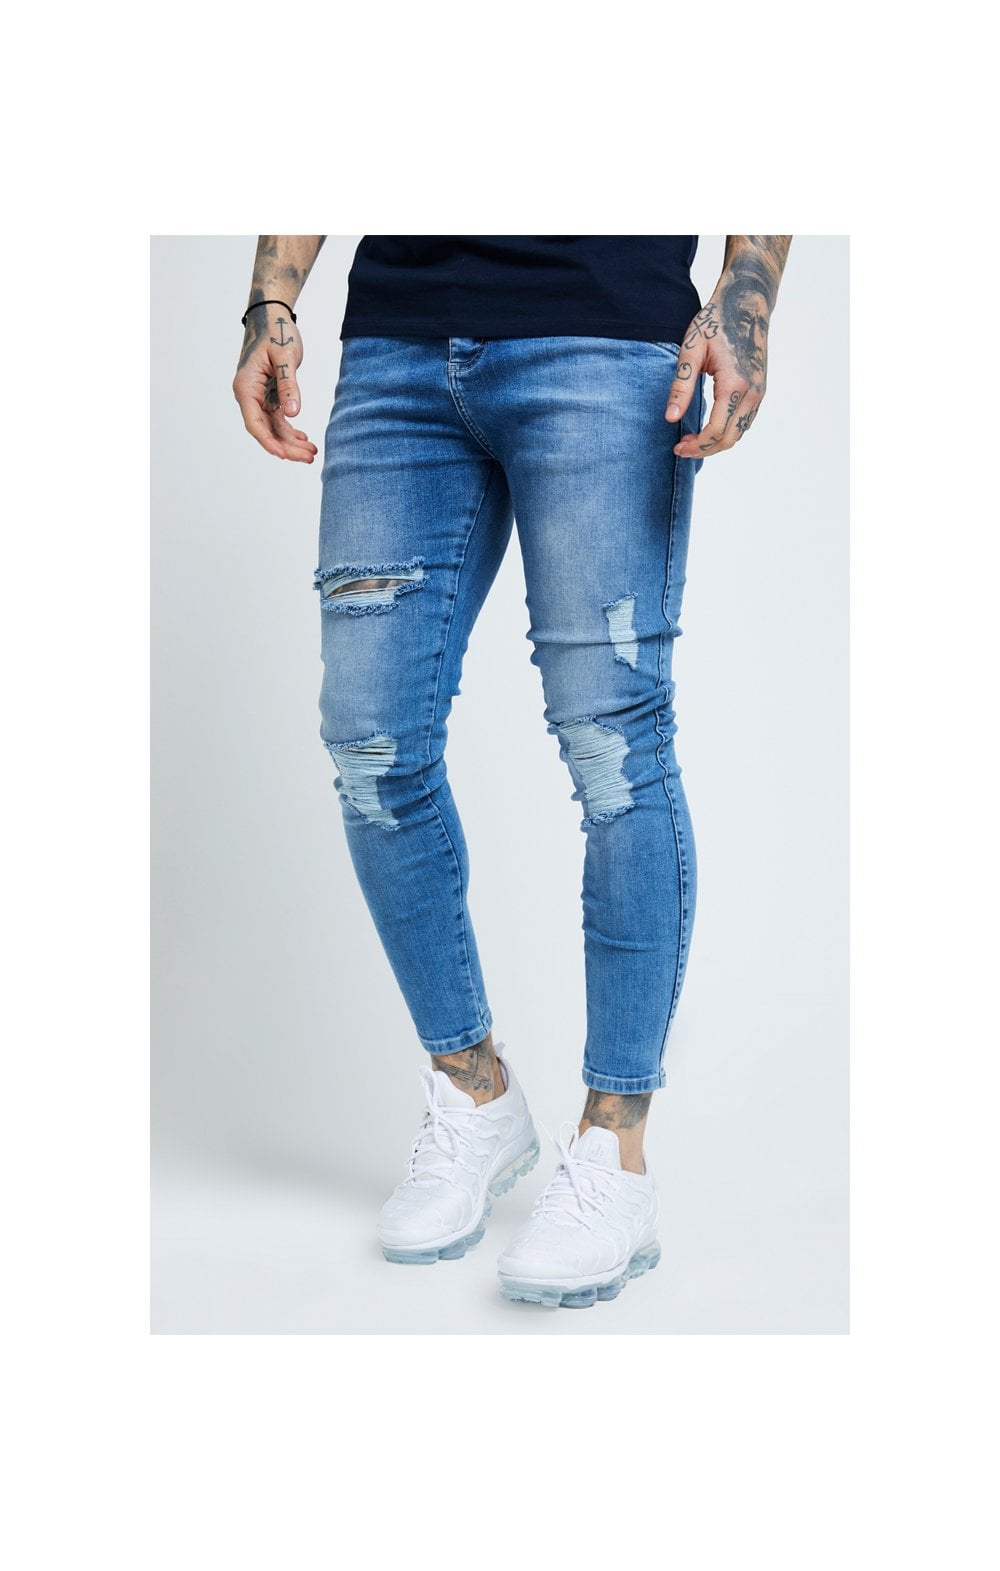 SikSilk Distressed Skinny Denims - Mid Wash